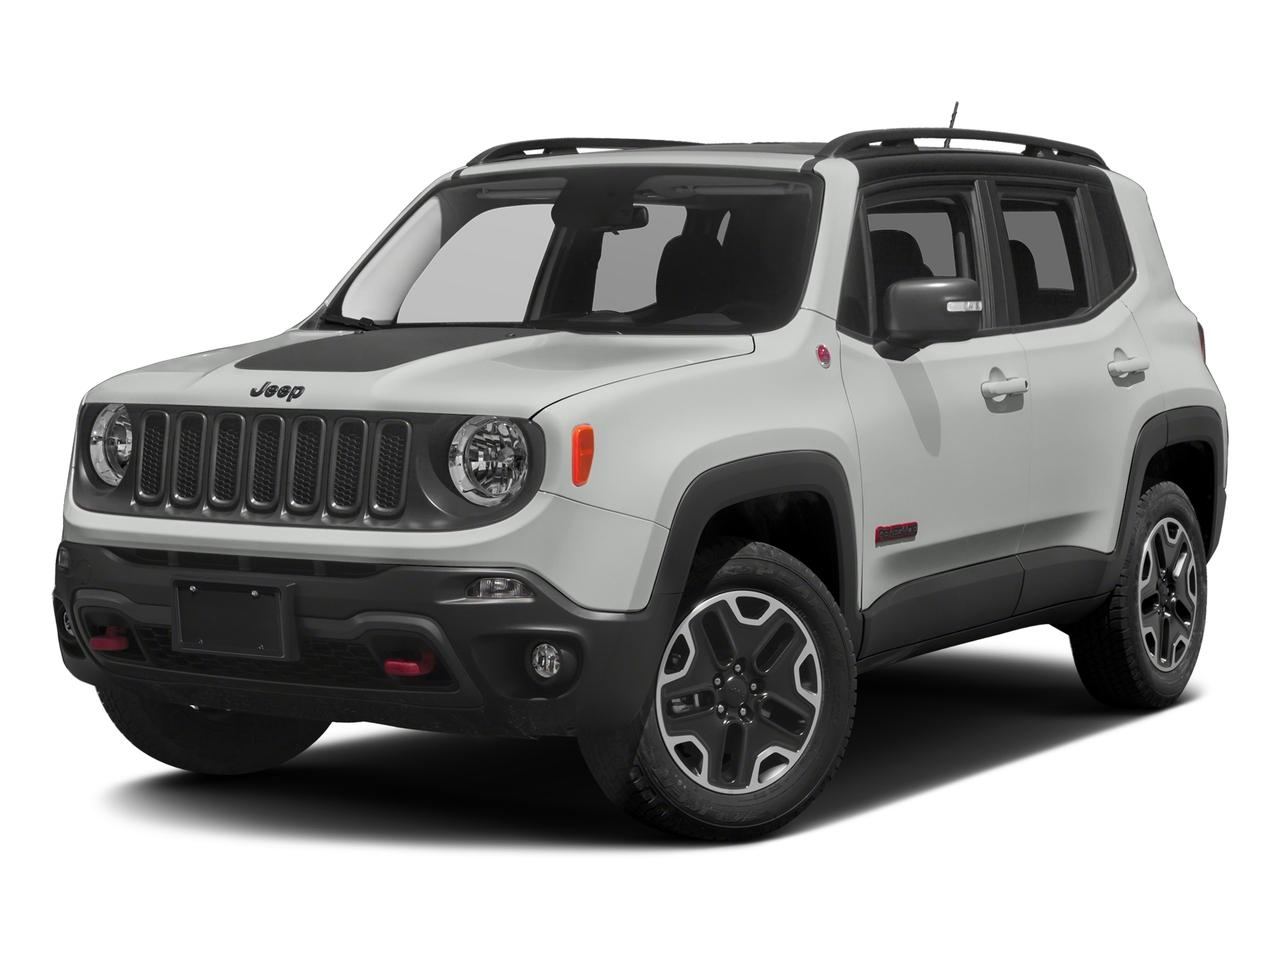 2016 Jeep Renegade Vehicle Photo in Greeley, CO 80634